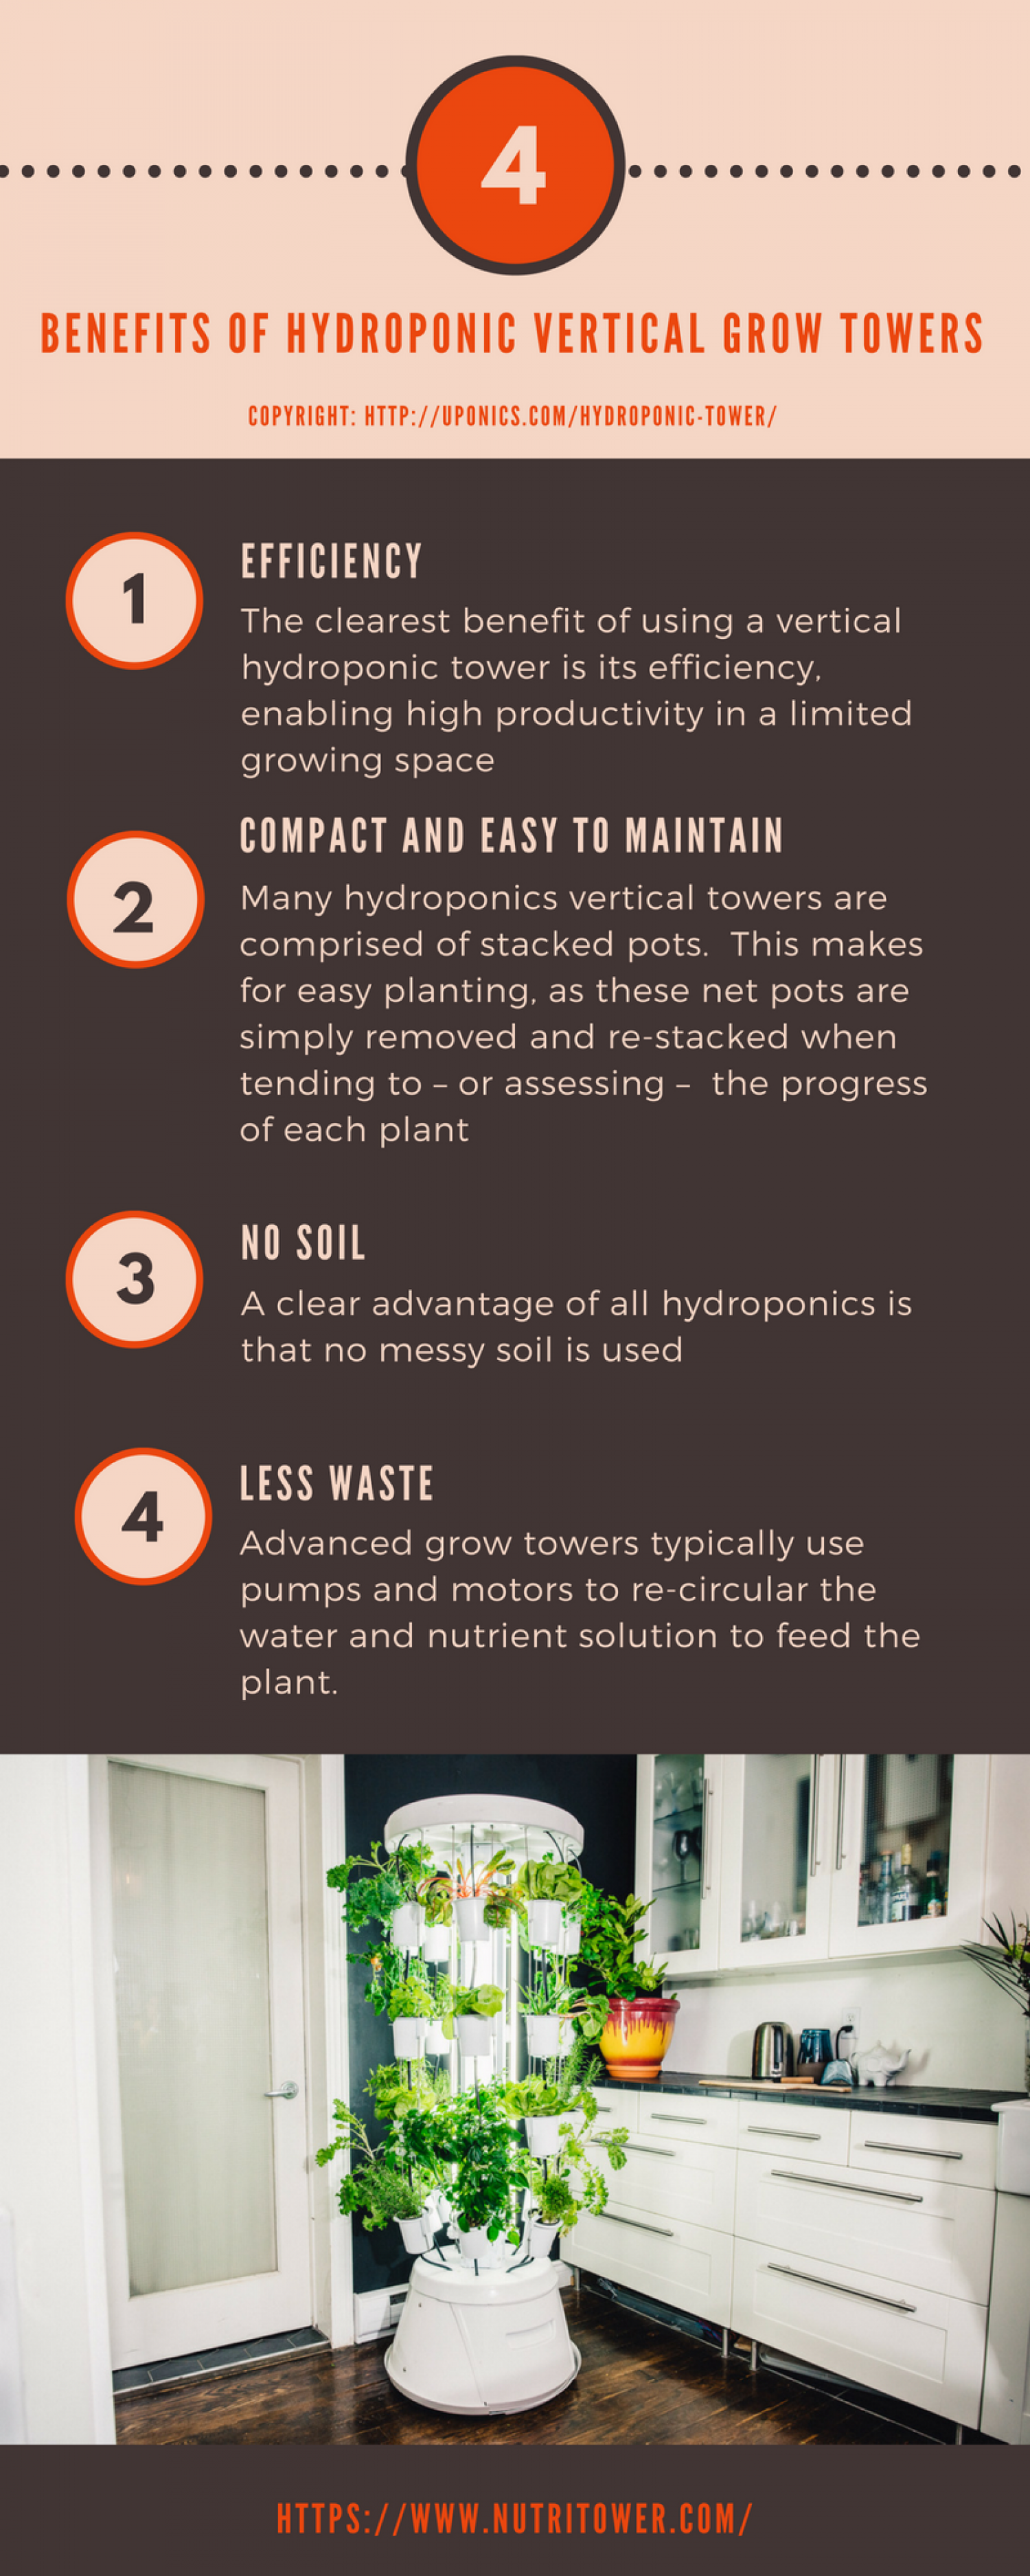 Benefits of Hydroponic Vertical Grow Towers Infographic